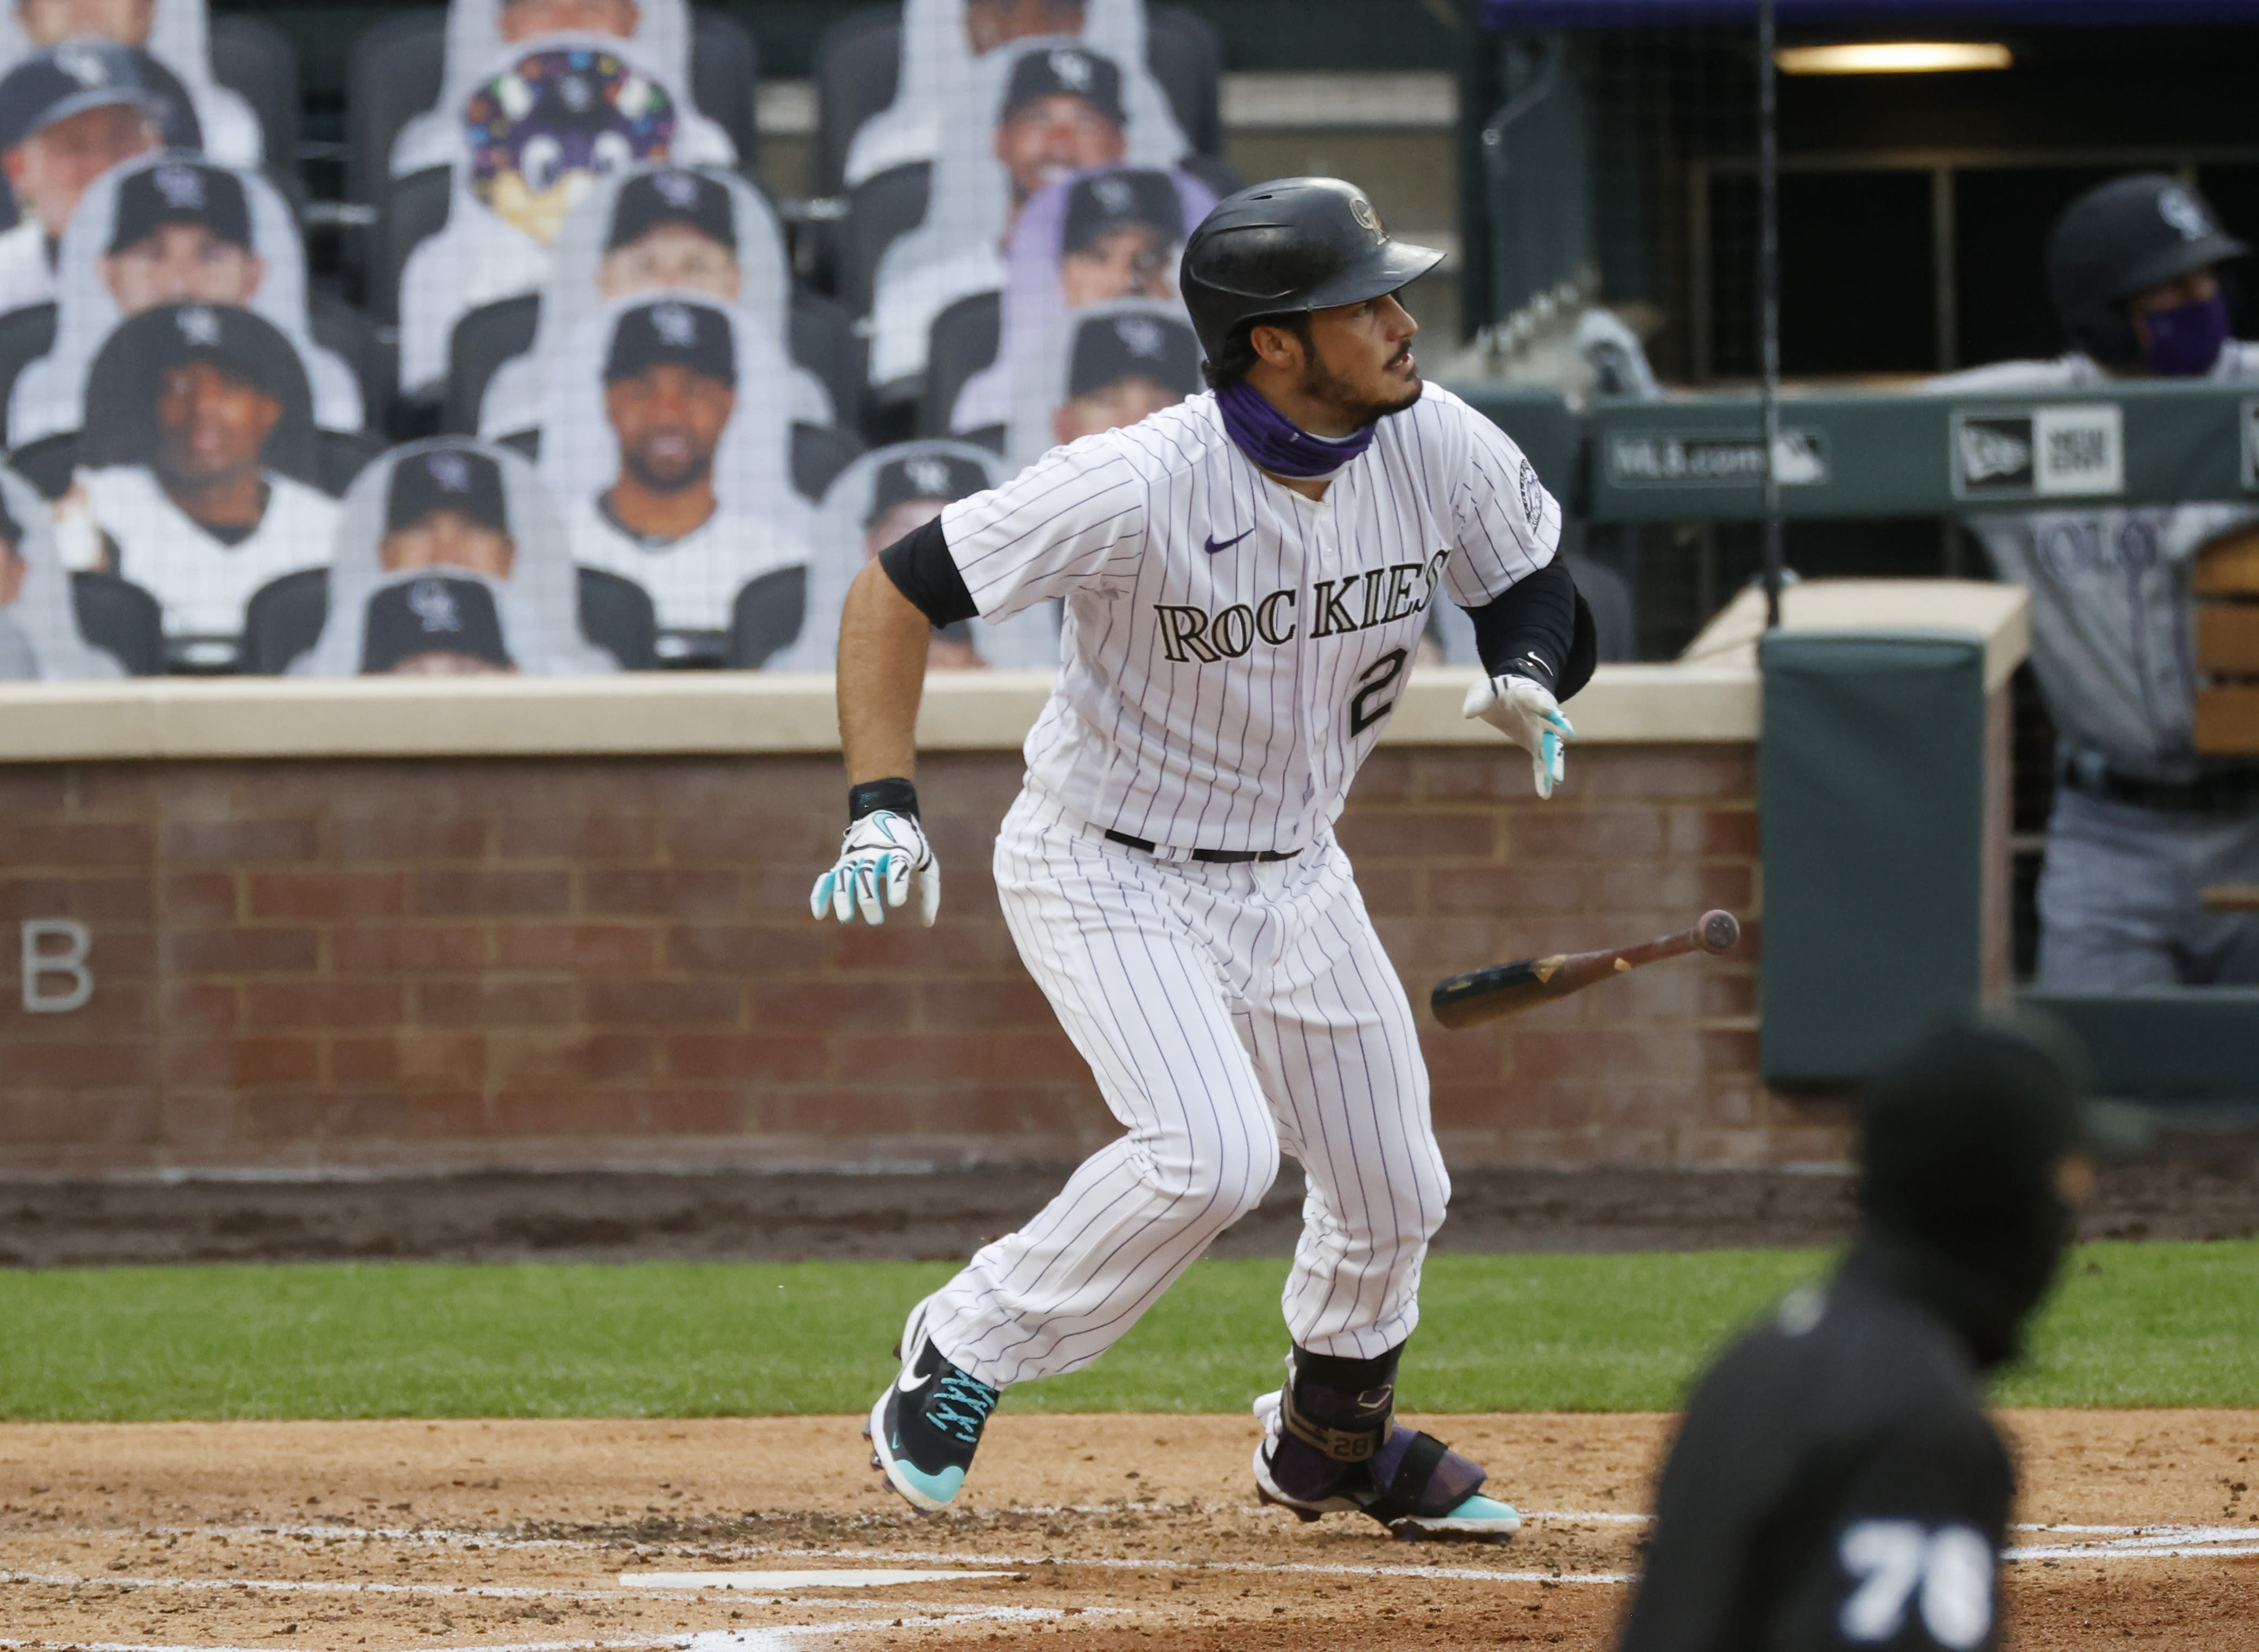 Colorado Rockies' Nolan Arenado breaks from the batter's box as he grounds out to San Diego Padres third baseman Manny Machado to end the bottom of the second inning of a baseball game Saturday, Aug. 1, 2020, in Denver. (AP Photo/David Zalubowski)